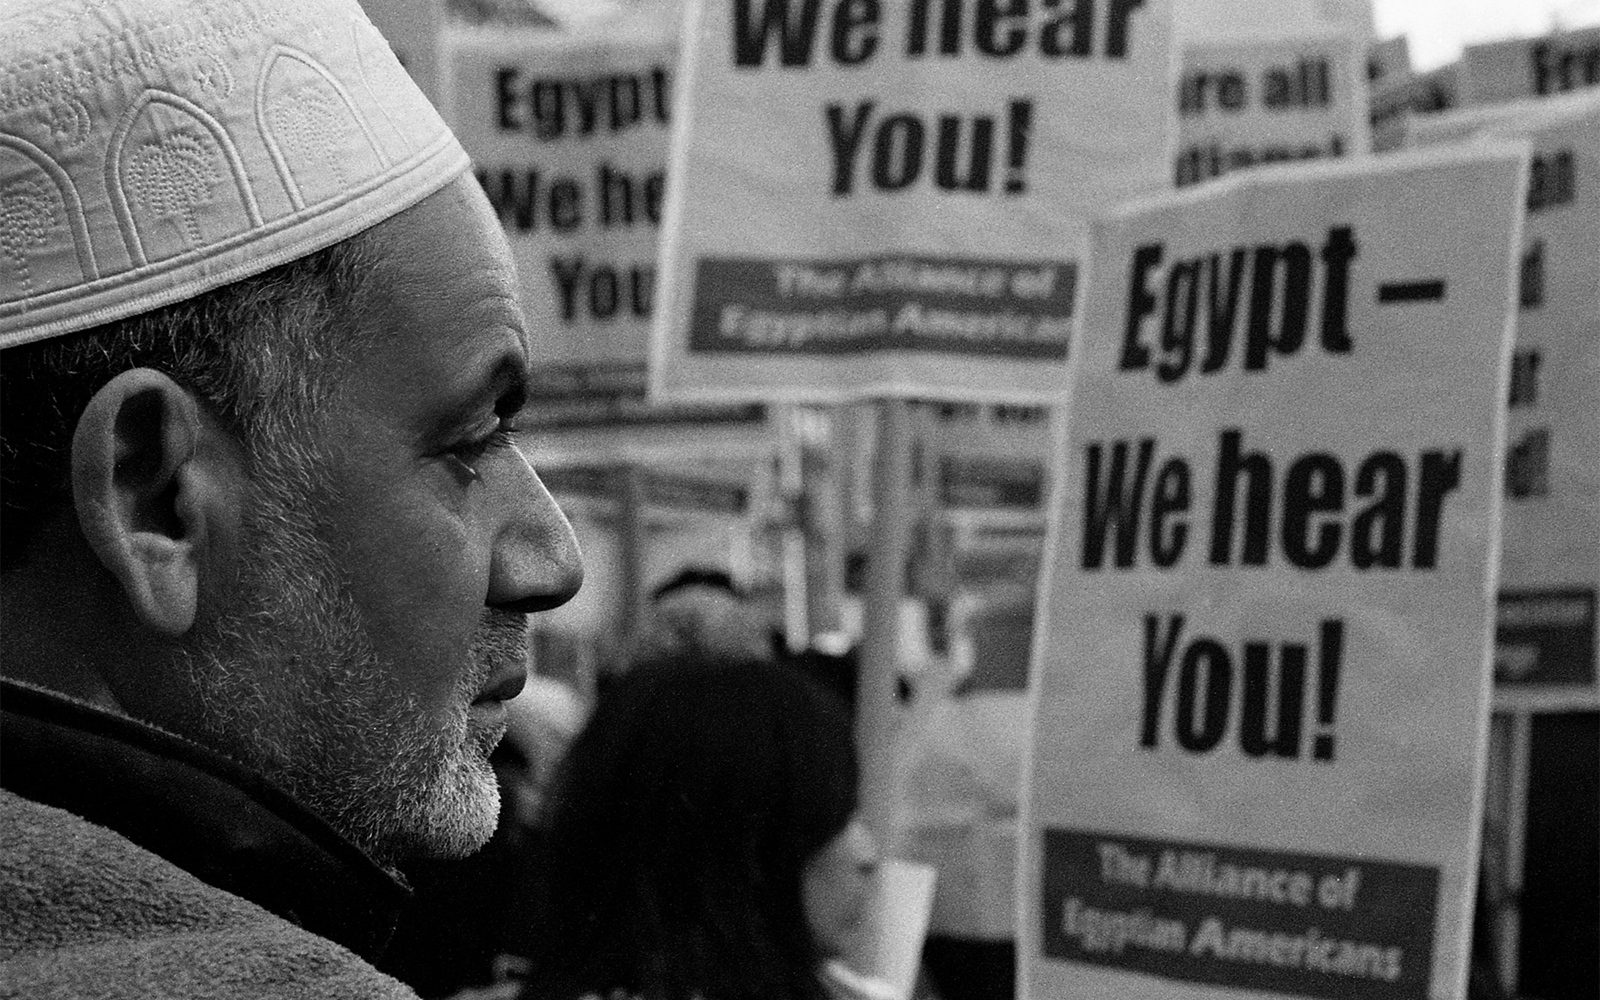 Arab Spring Protest, 2011